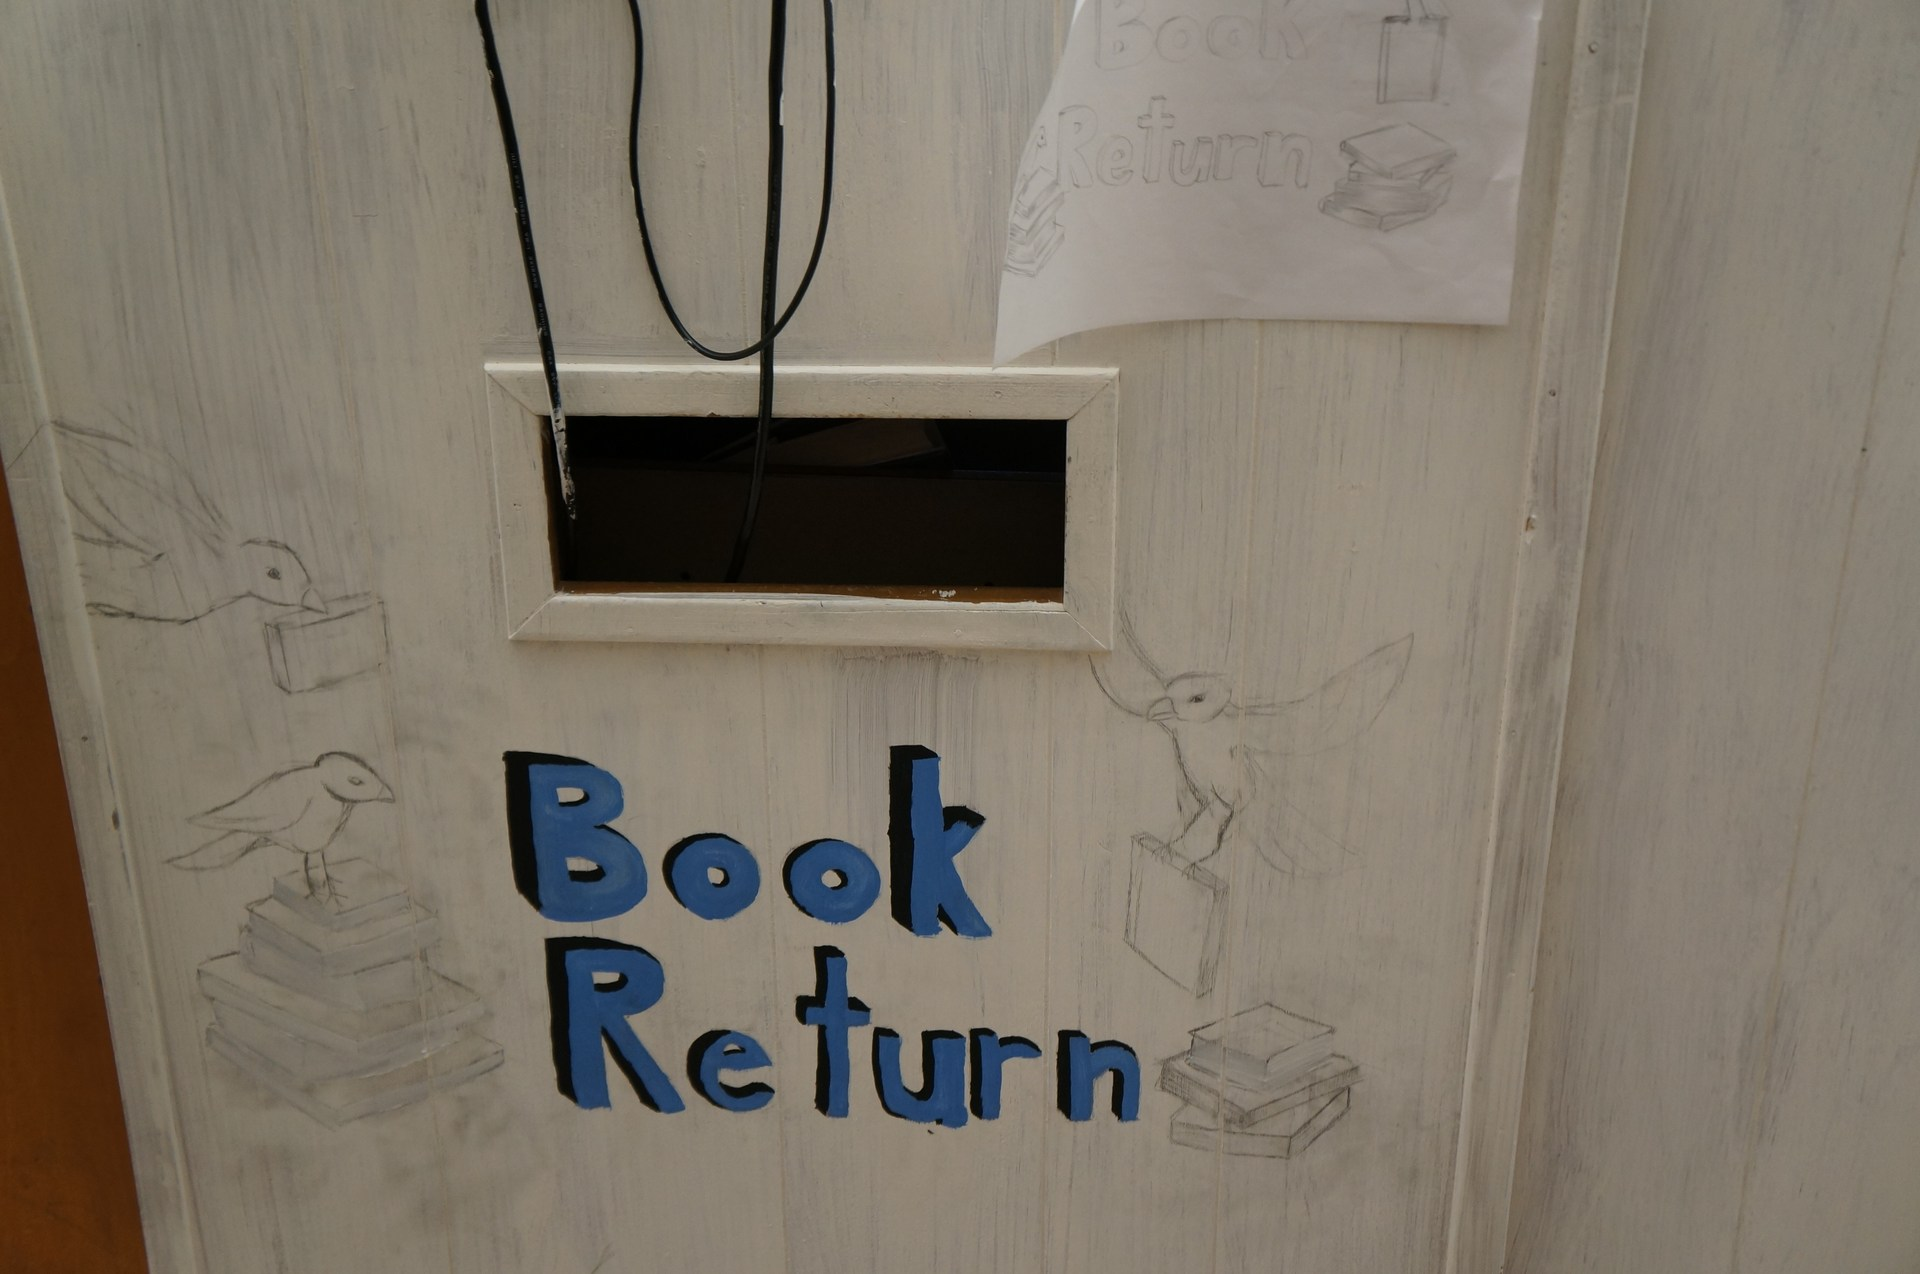 Mural of Book Return location.